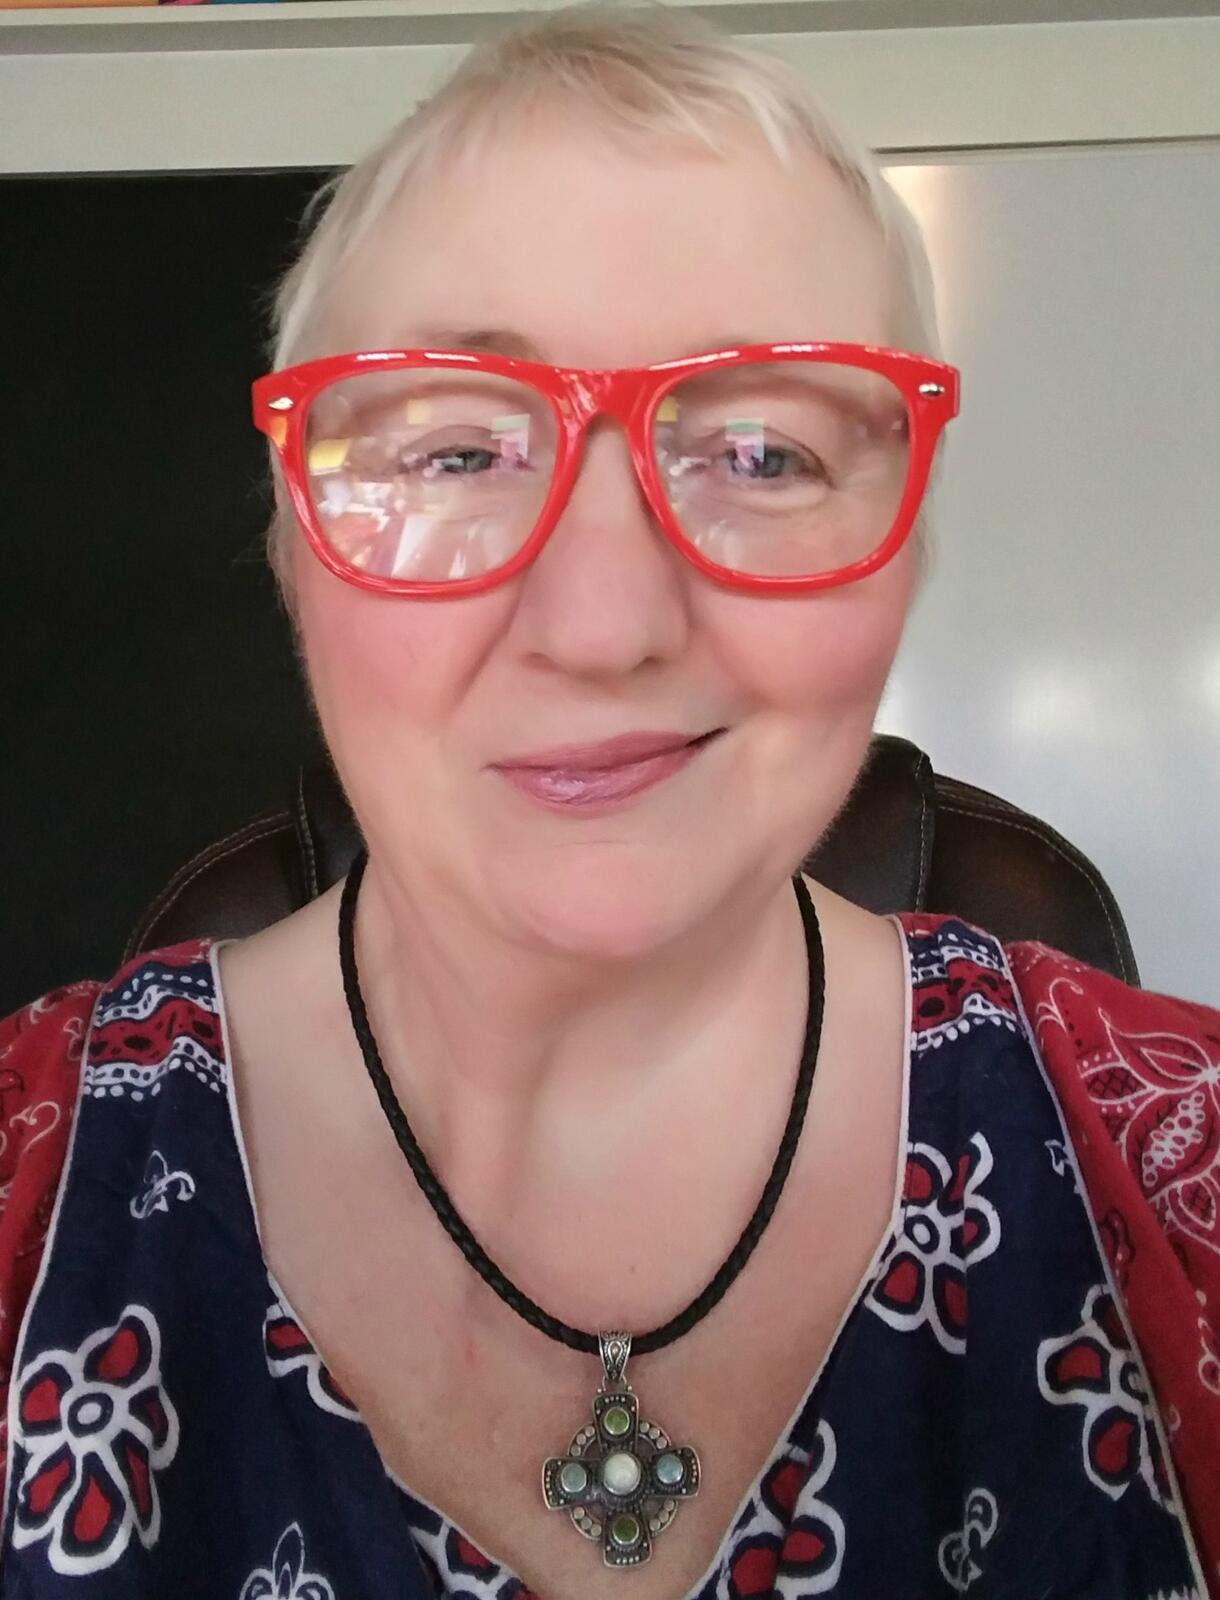 Wabi Sabi Woman - 3/22/17 Podcasting on a day after therapy when fears arose; Pugs and white tile floors!